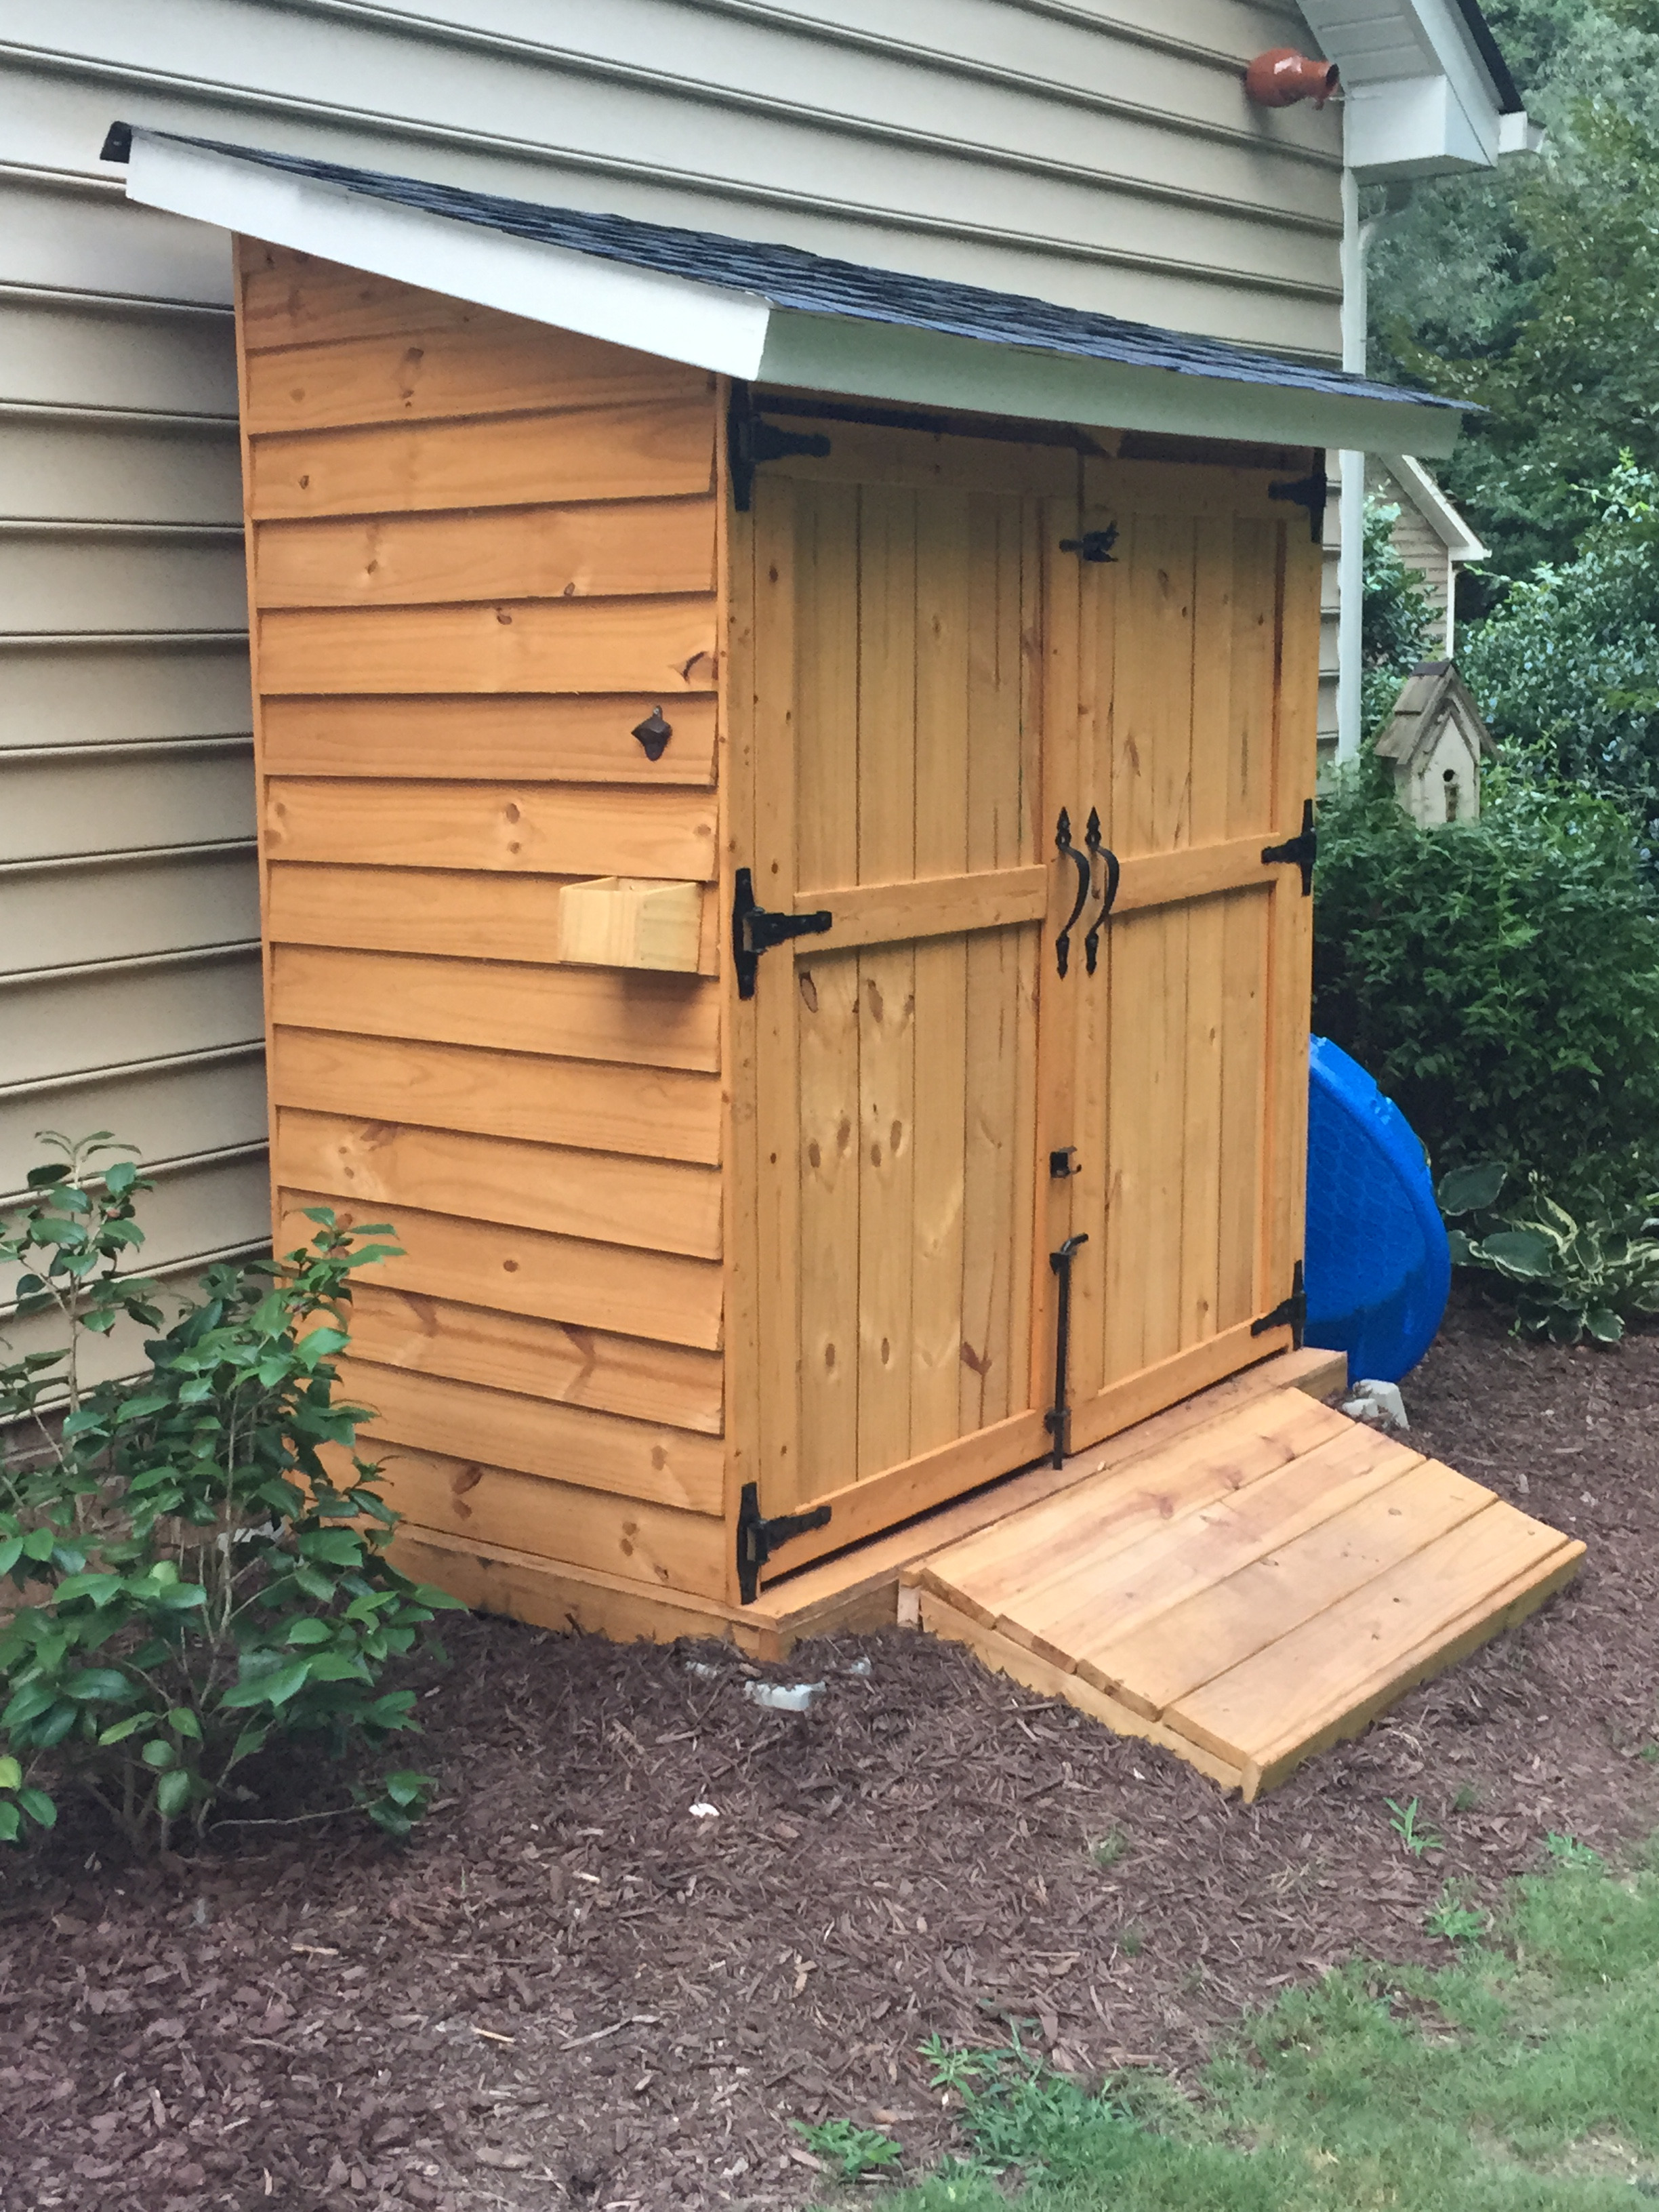 Best ideas about DIY Backyard Sheds . Save or Pin Ana White Now.